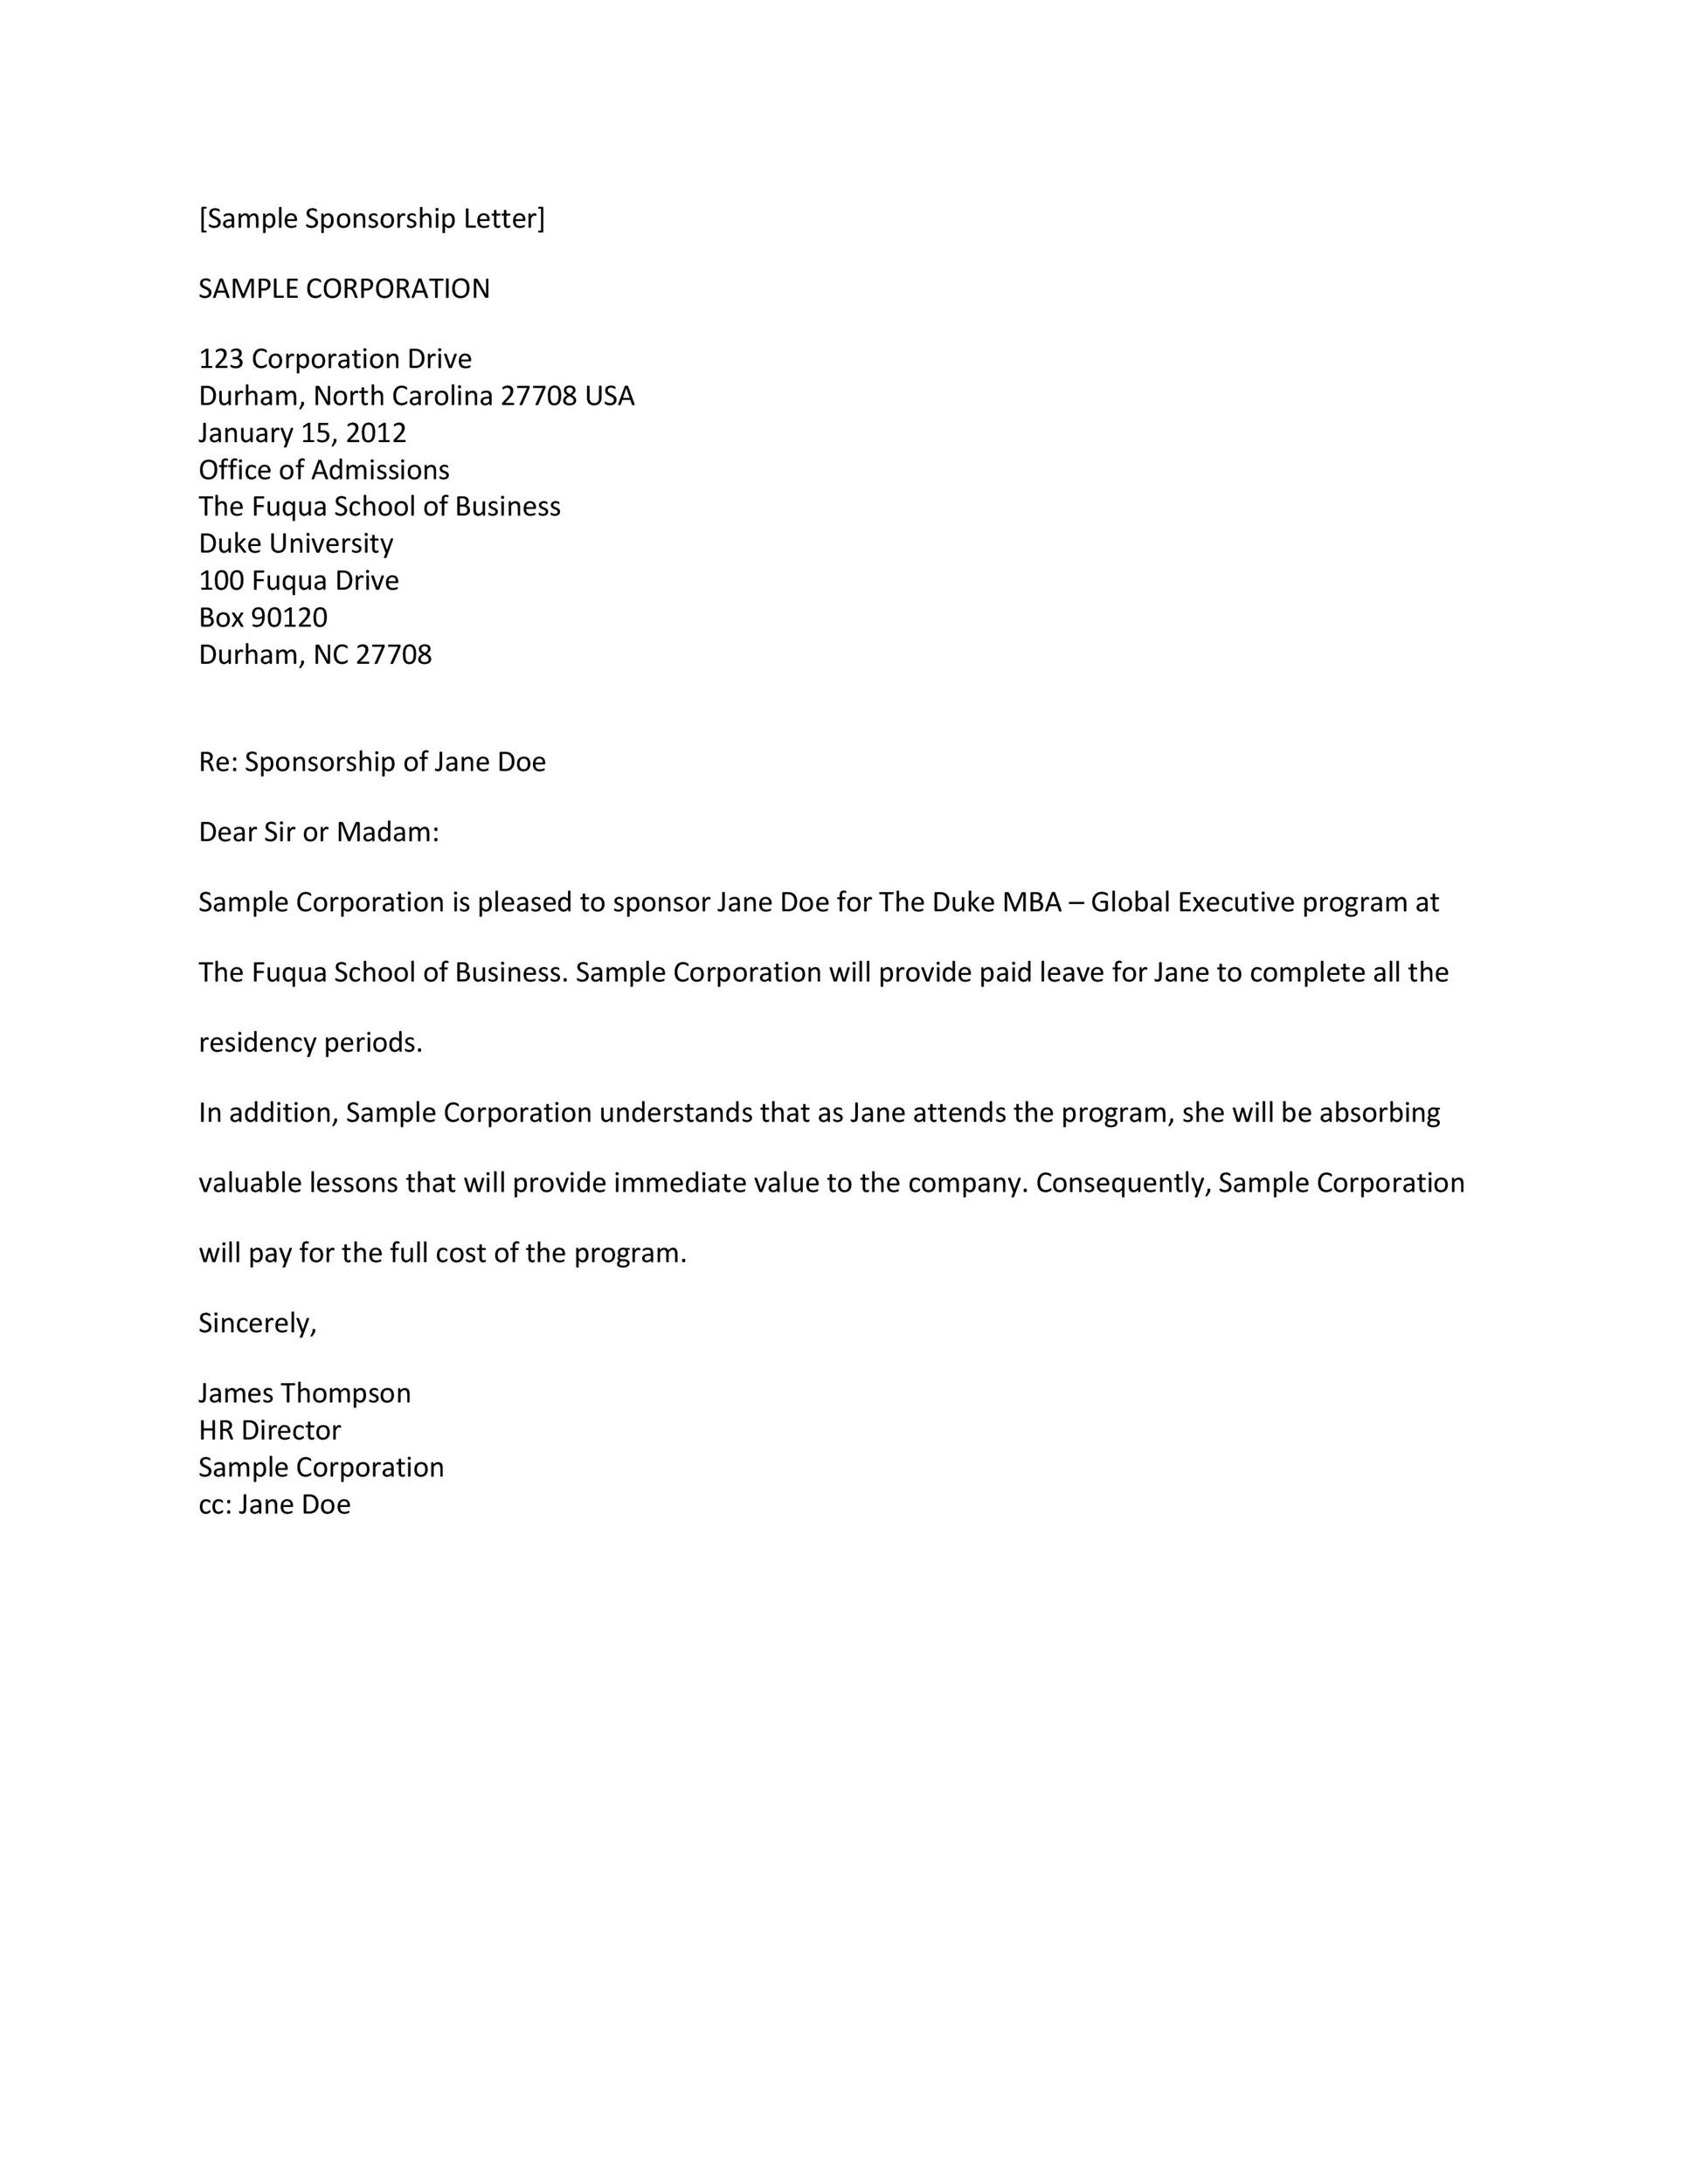 Exceptional Printable Sponsorship Letter Template 25 Intended How To Write A Sponsorship Letter Template